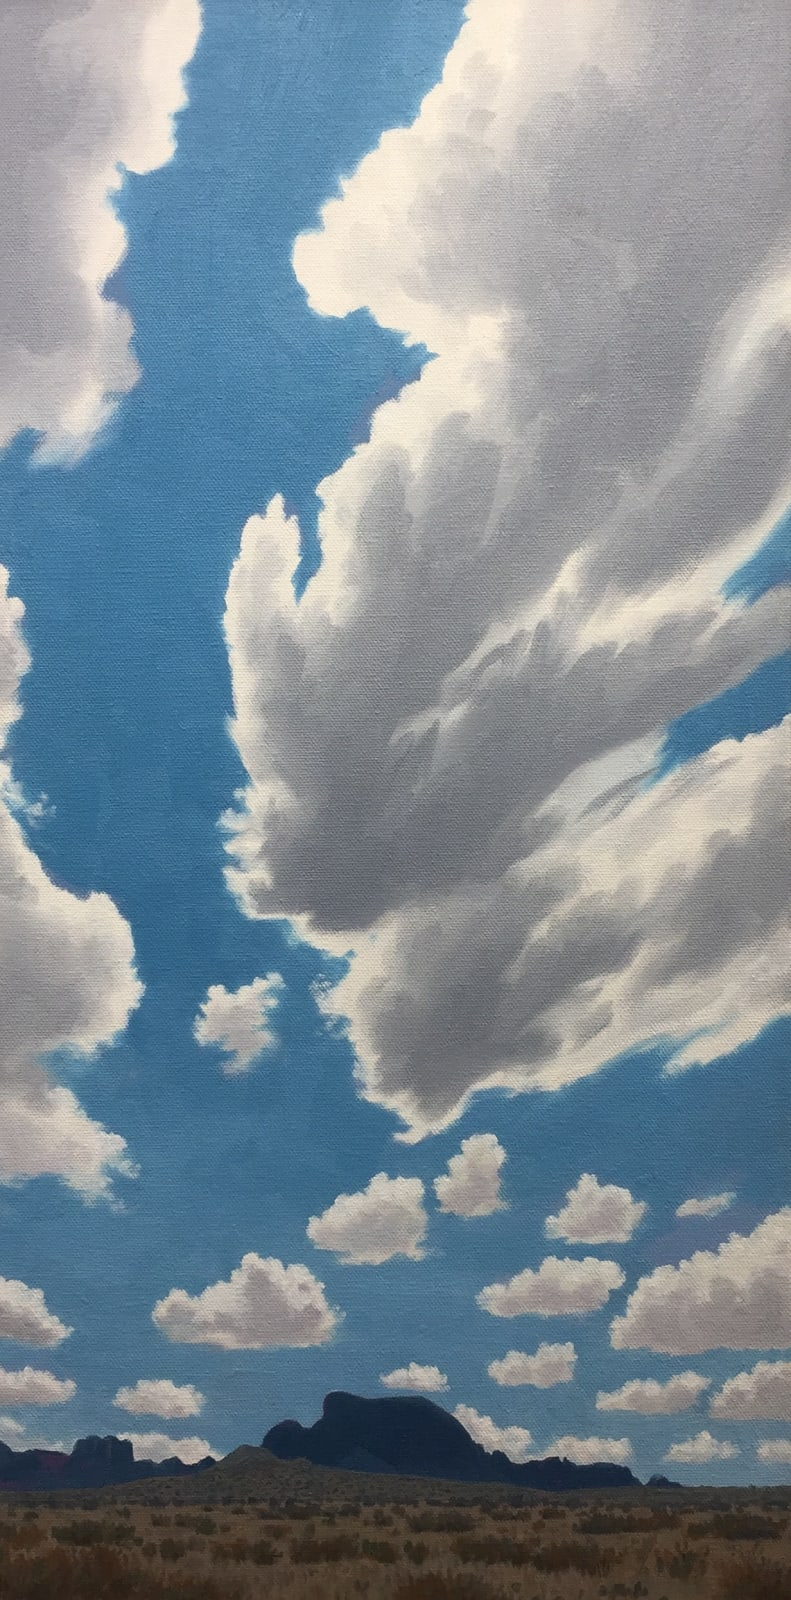 Dennis Blagg, Alsate and Dancing Cloud, 2018